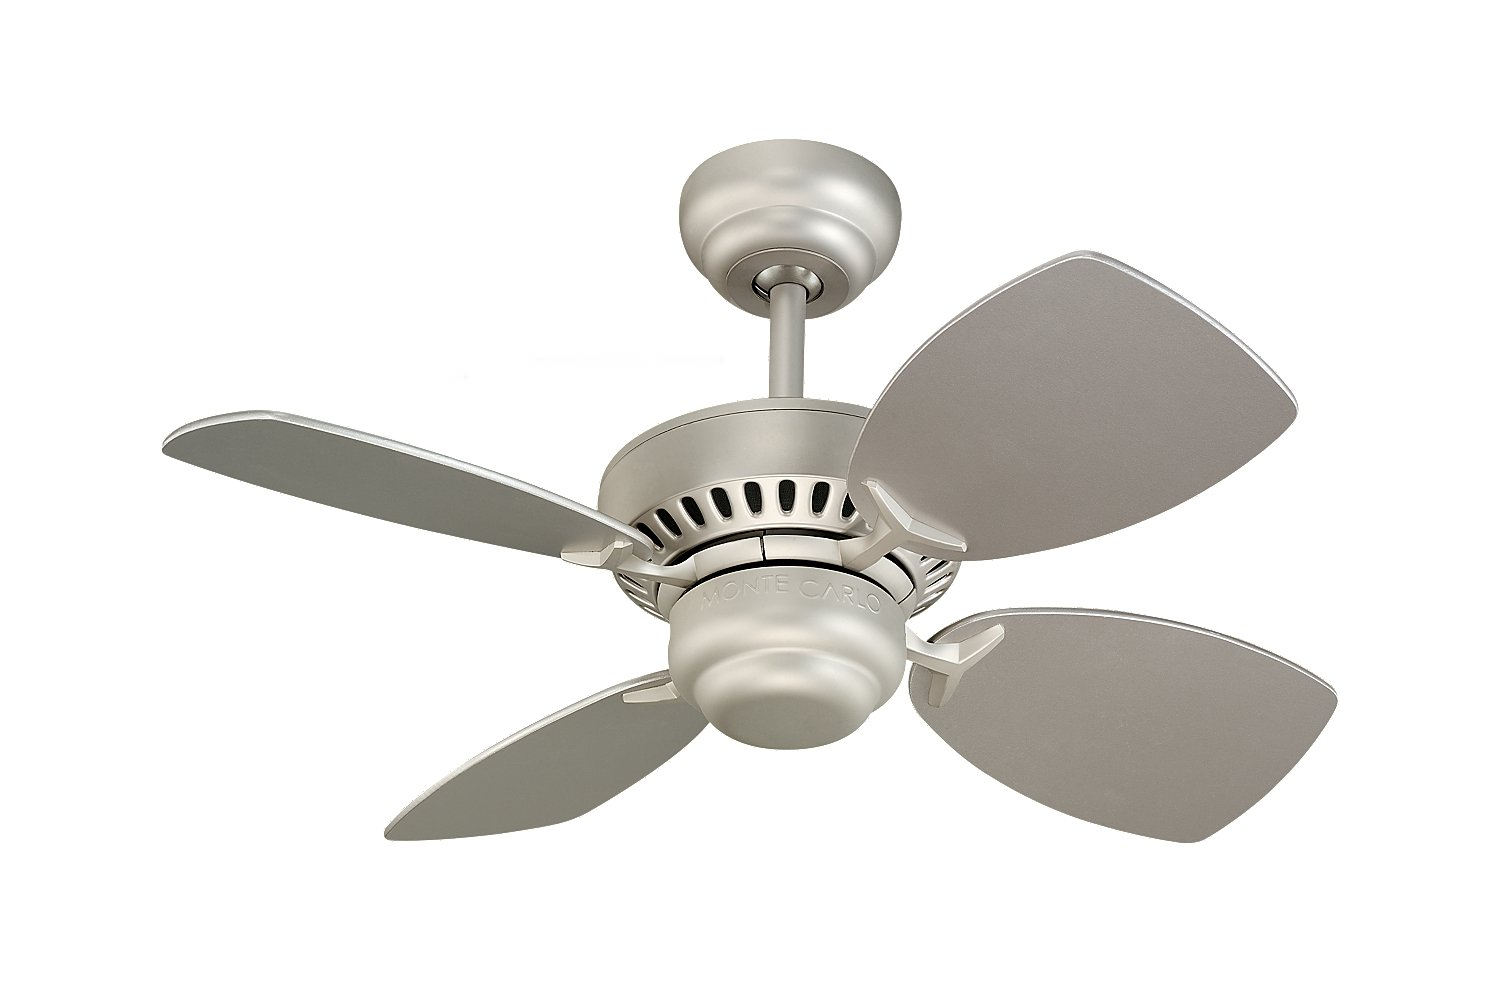 amazon ceiling fans hunter at fan blade strategist profile best the low on iv ceilings article